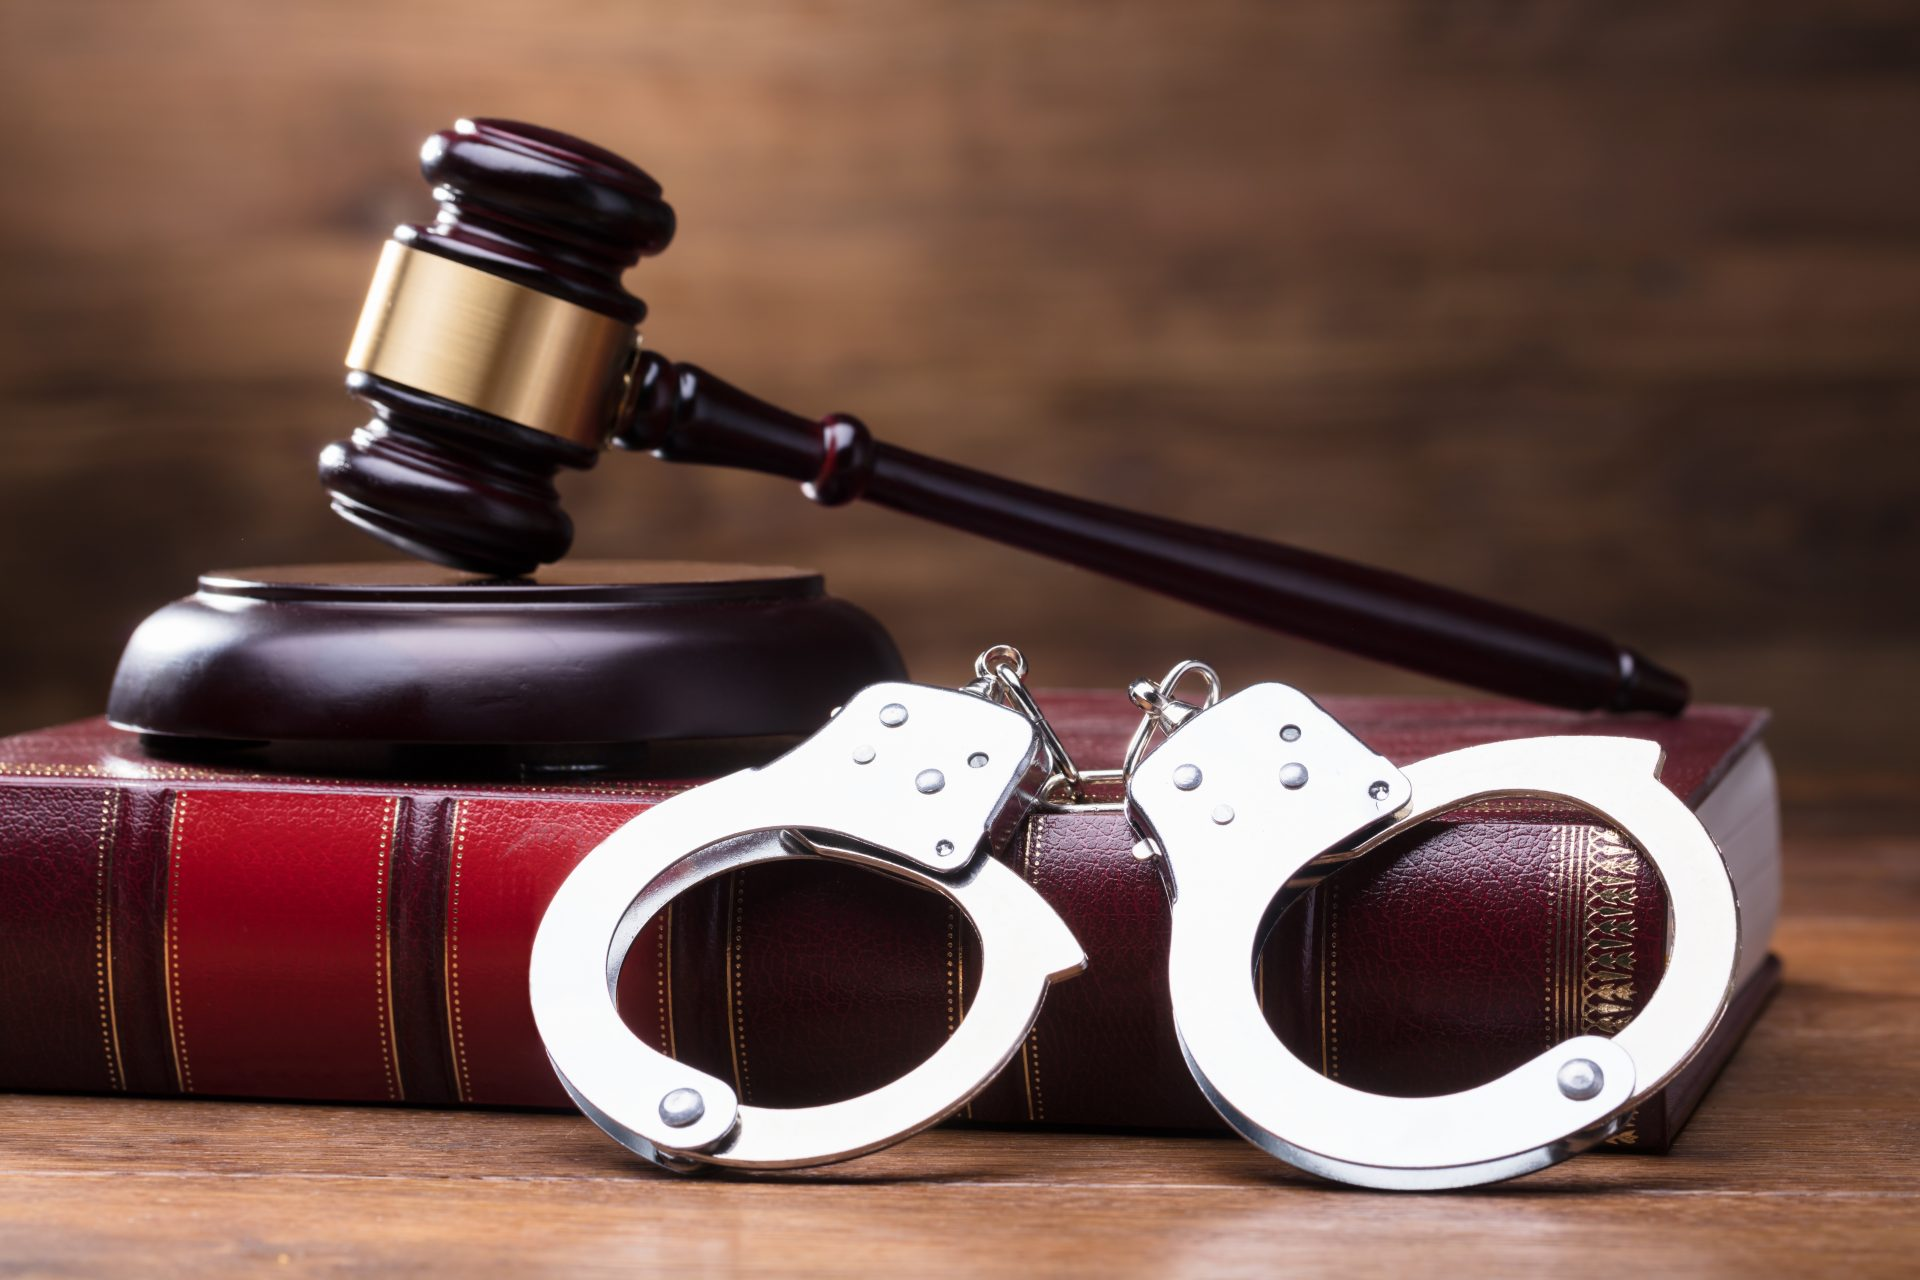 A book, a judge's gavel and handcuffs, representing how one can benefit from contacting a Flint criminal defense lawyer.